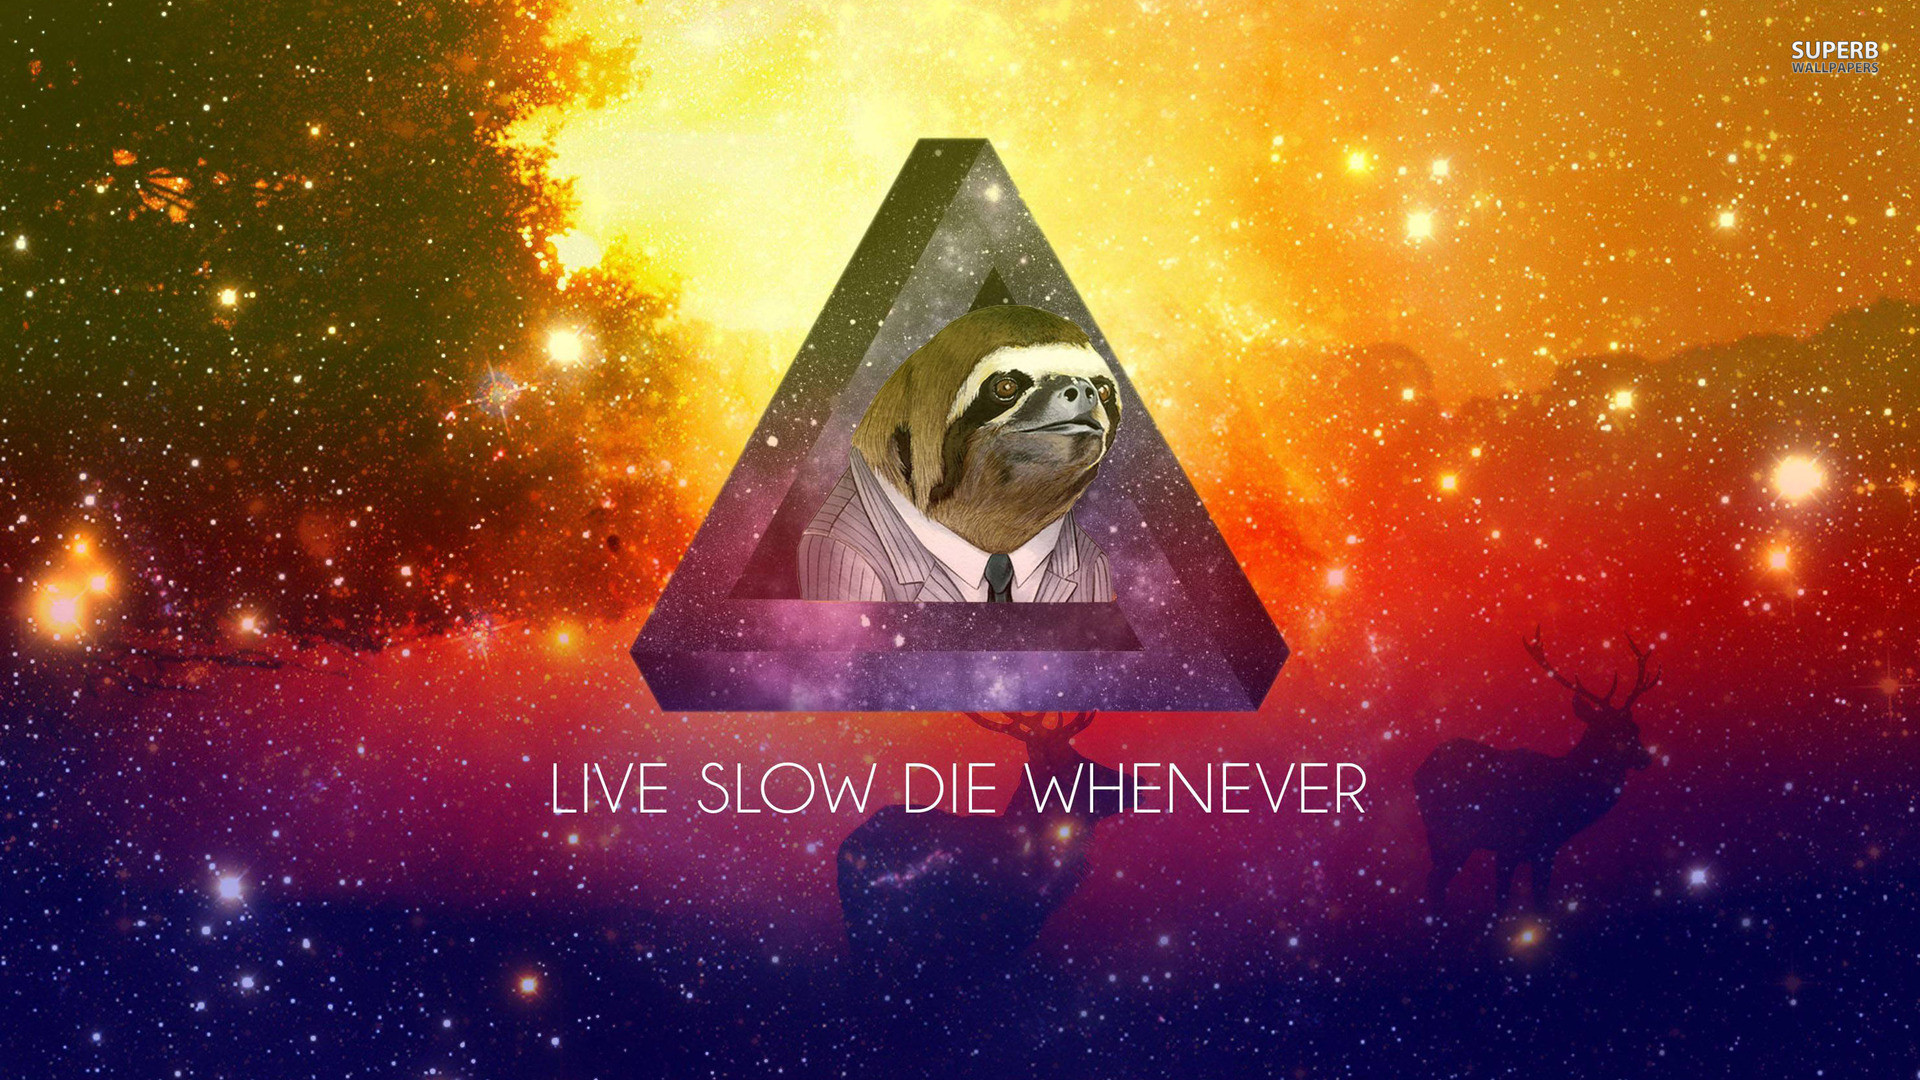 My laptop background I might post this everytime in the context of sloths